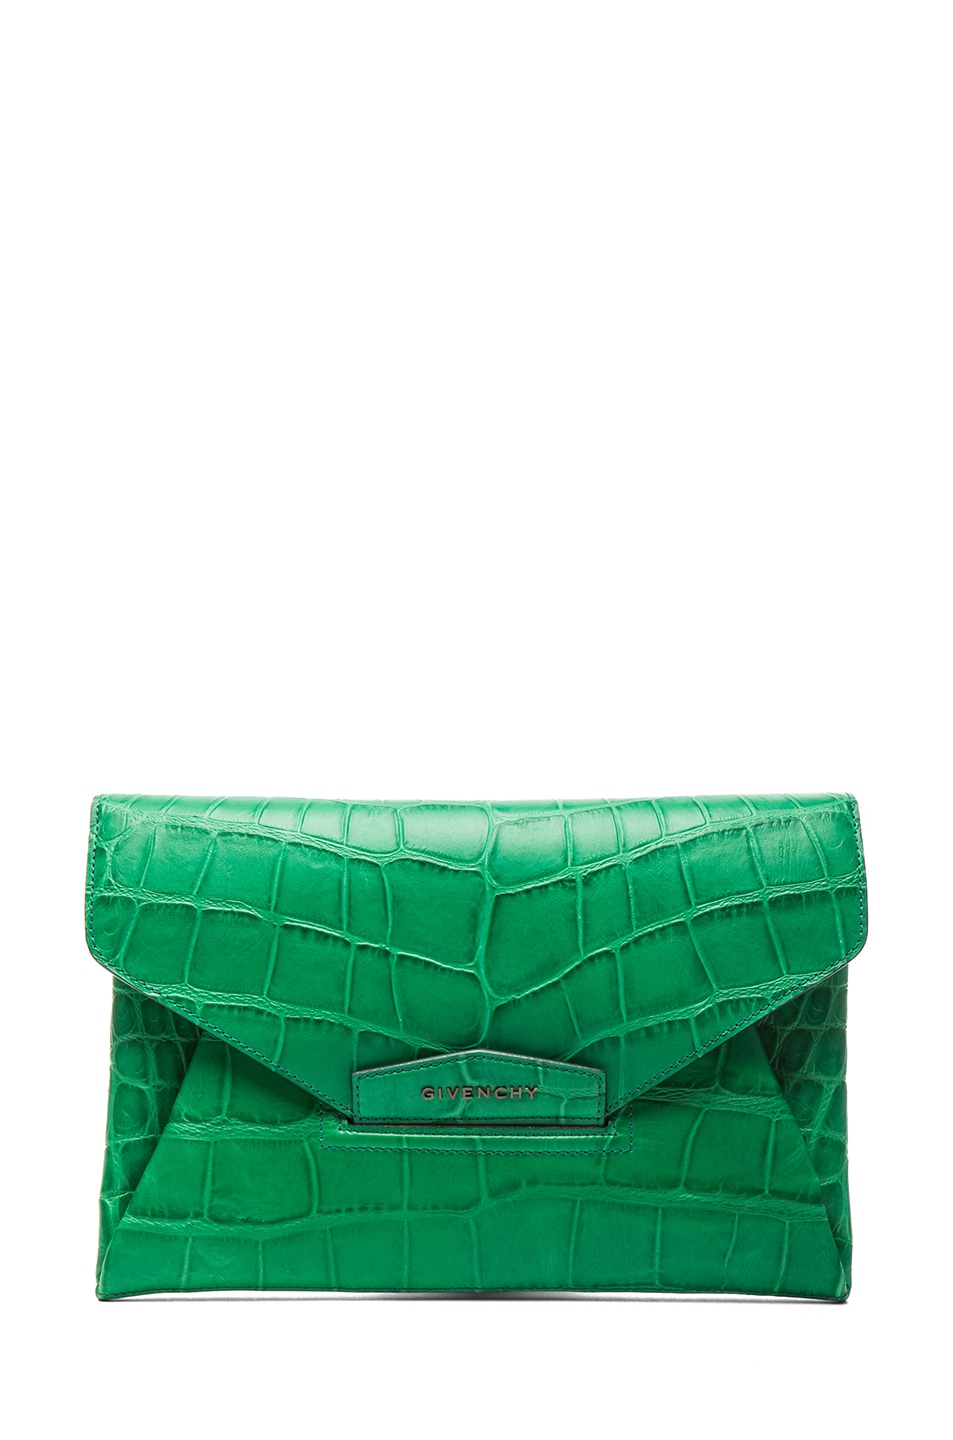 Image 1 of GIVENCHY Medium Antigona Envelope Stamped Croc Clutch in Emerald Green